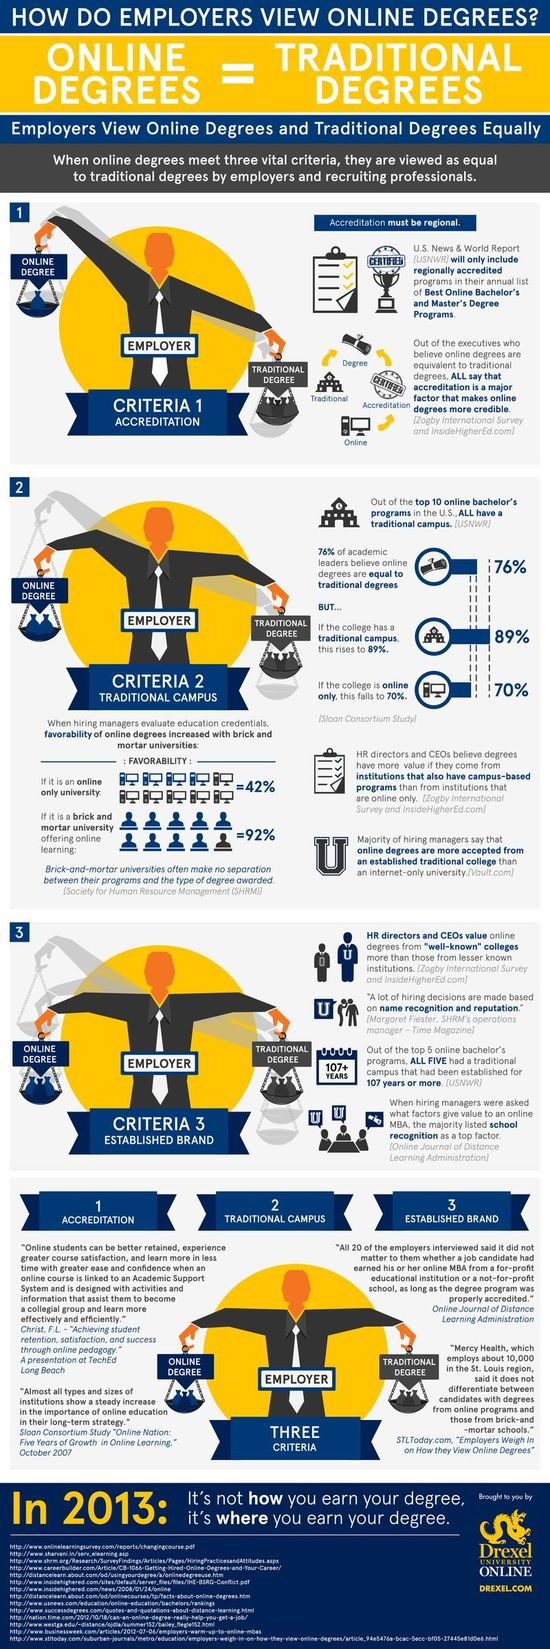 How Do Employers View Online Degrees Compared To Traditional Degrees? #highered #infographic